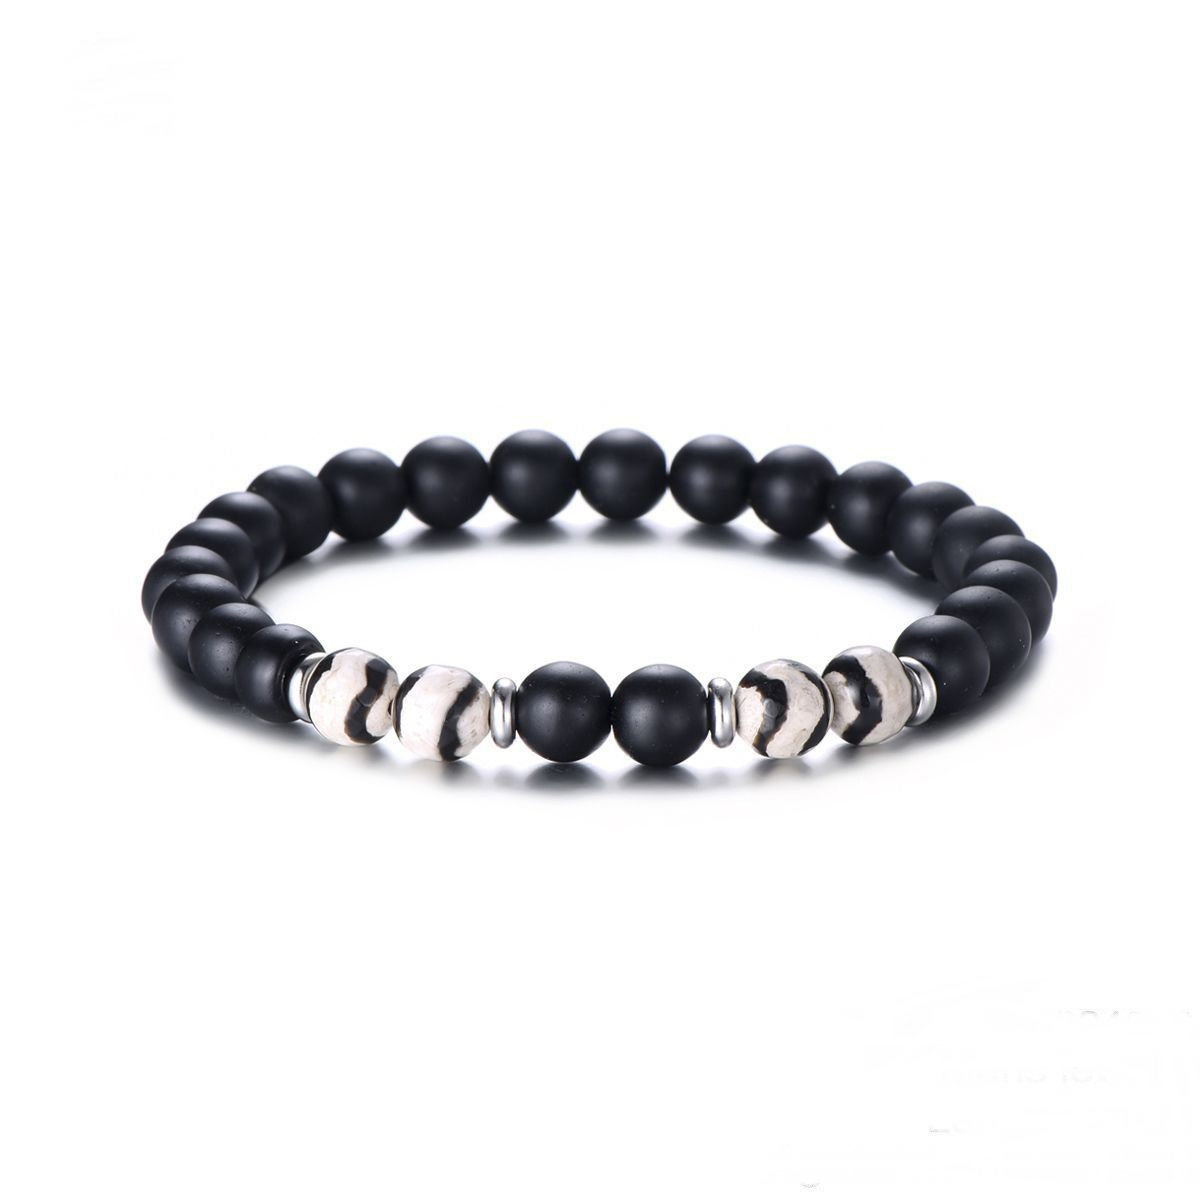 Armband Zebra - Just For Him - Natural Stones - Stainless Steel